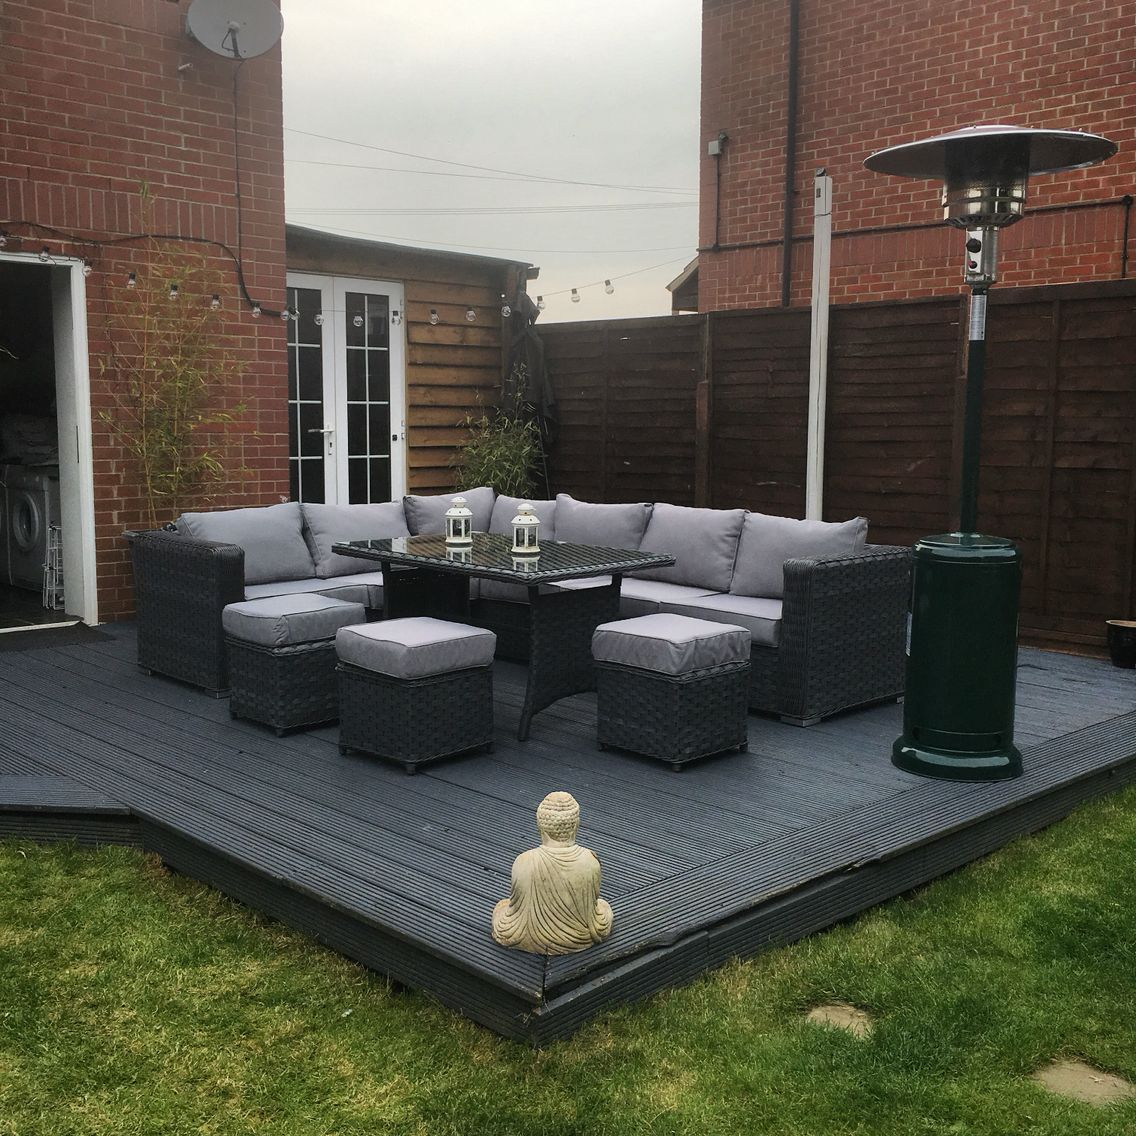 9 seater rattan garden furniture grey decking garden for Garden decking ideas pinterest